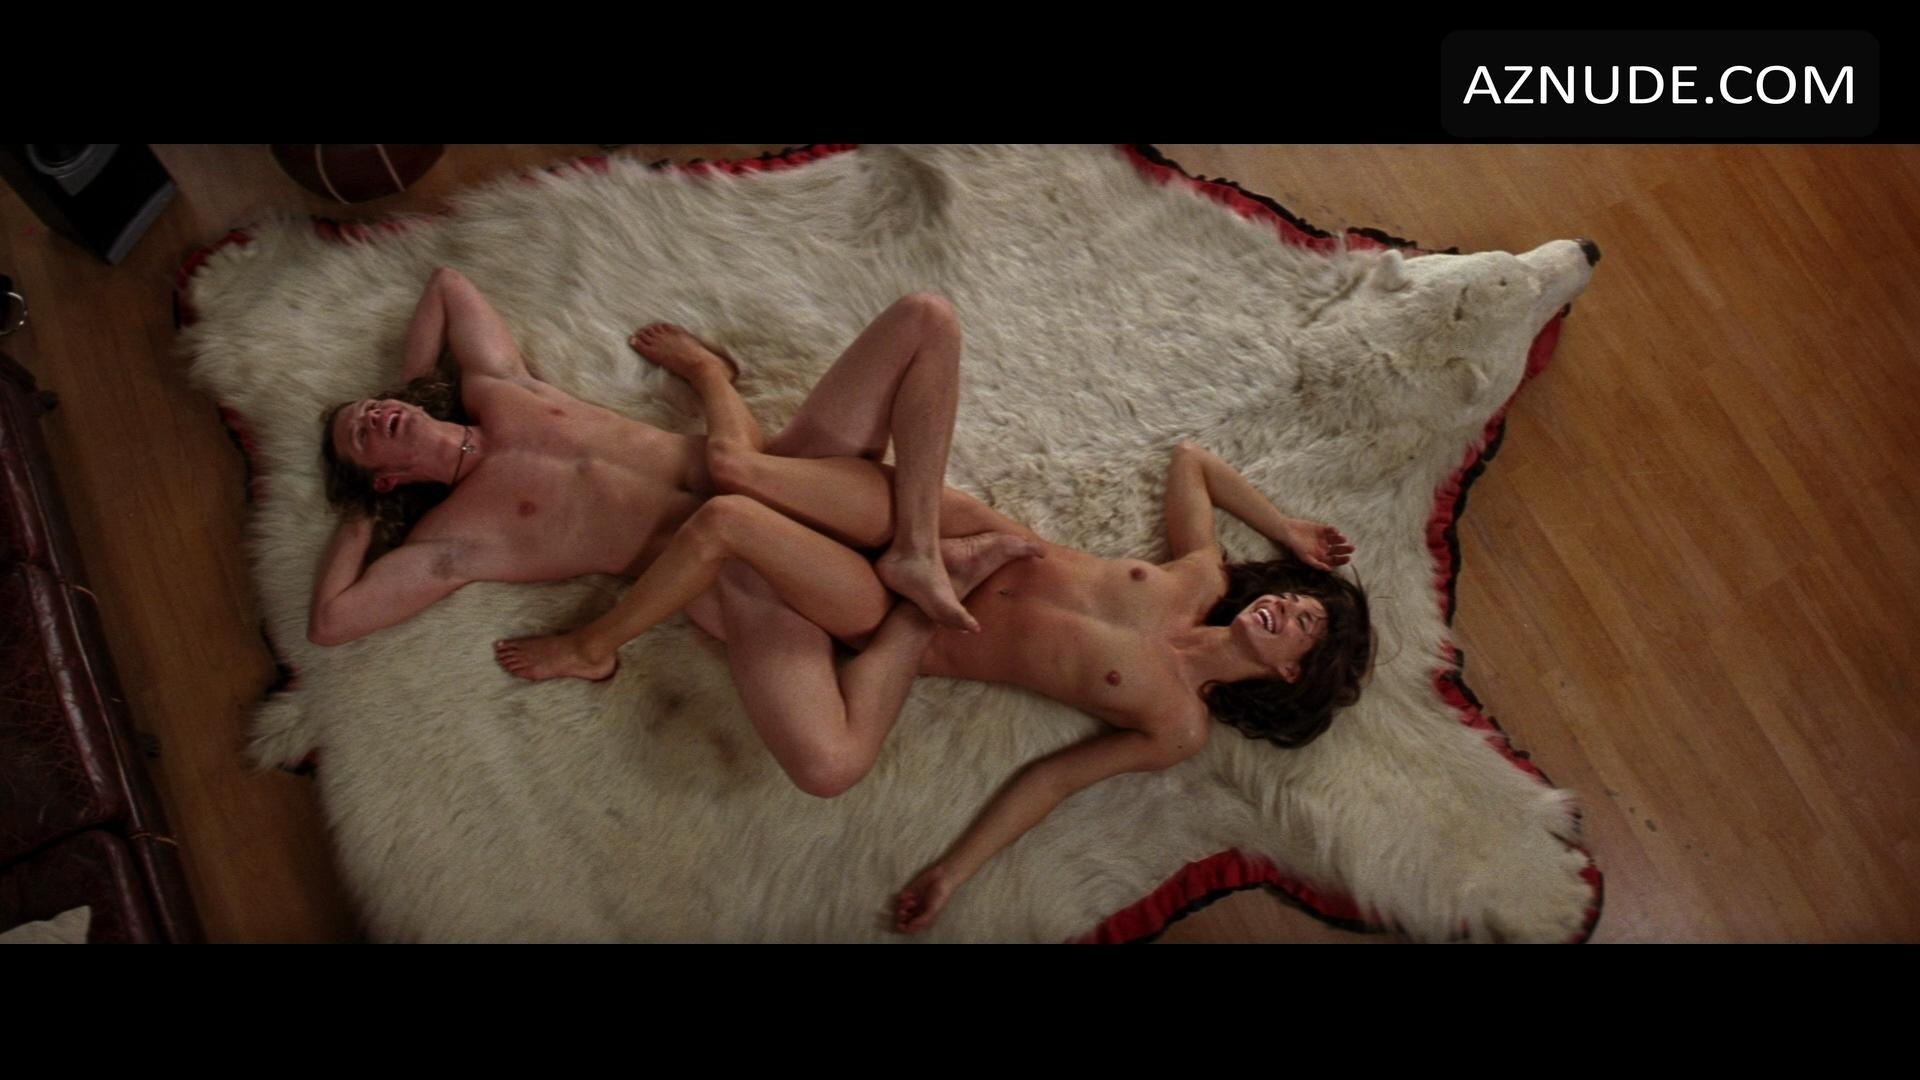 Teen Gay Sex Video And Movie With